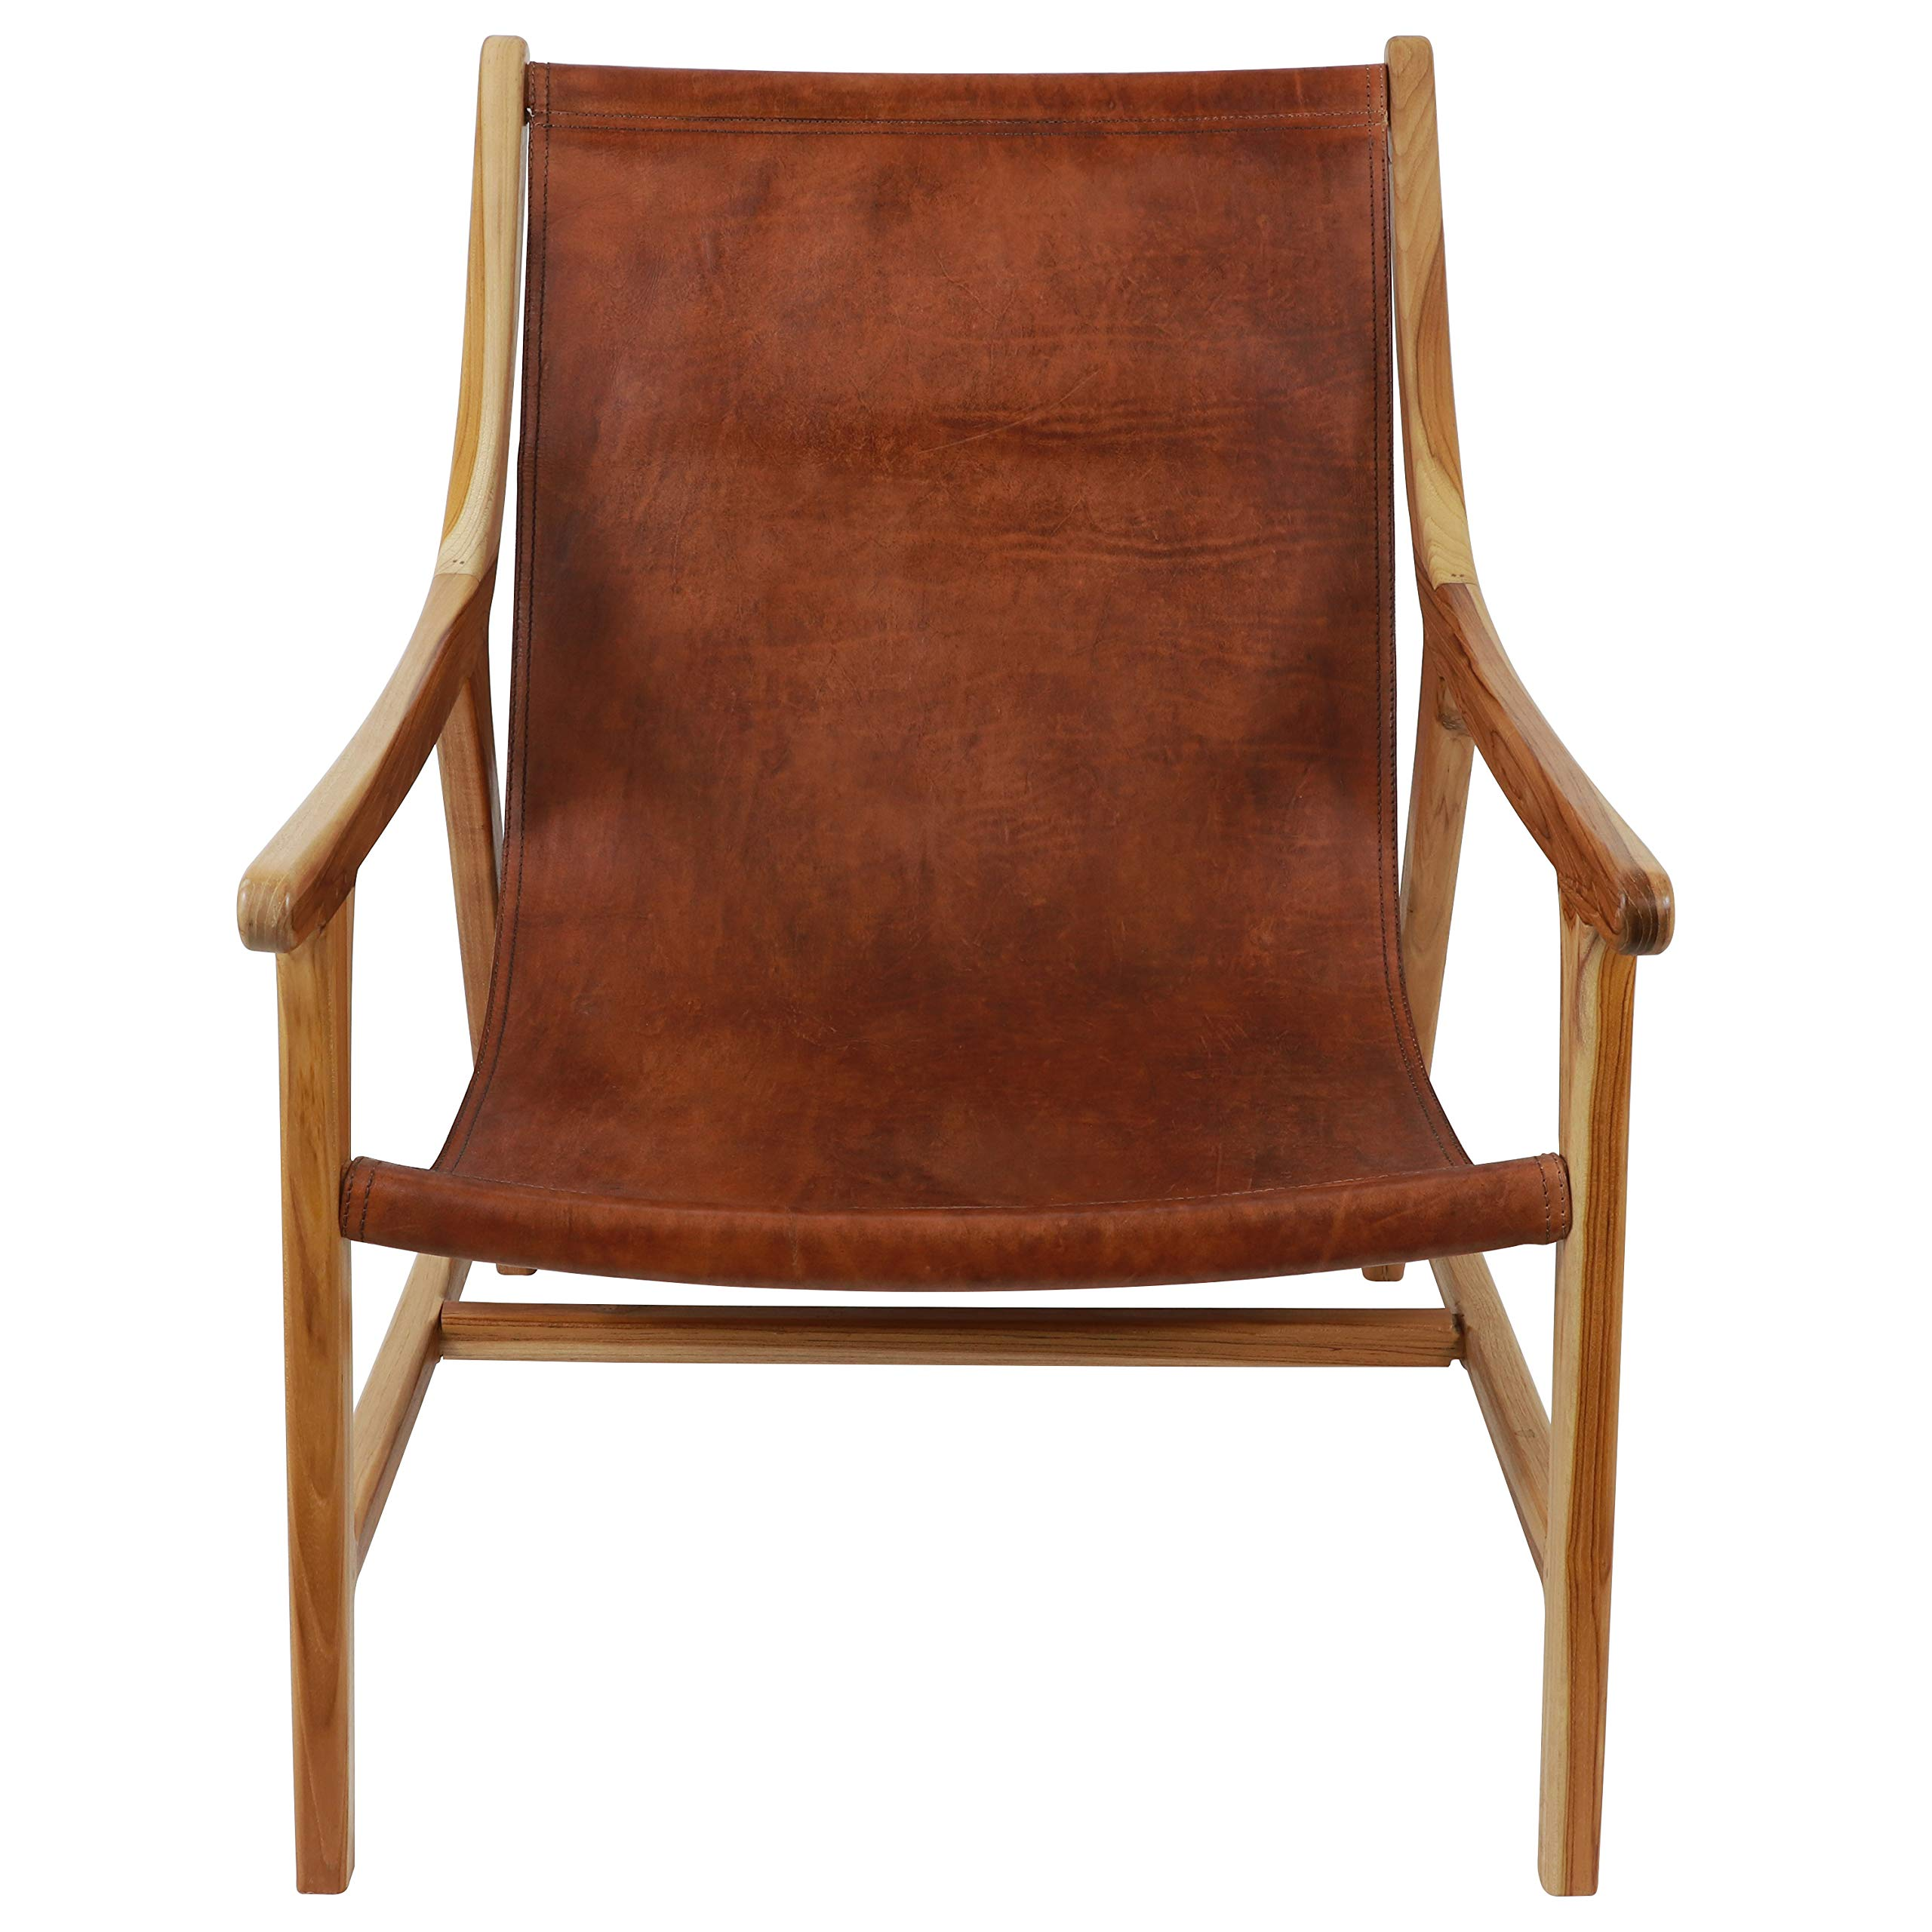 Decor Therapy Leather Sling Chair, 35.1 x 35.1 x 27.5 in'' in'', Brown by Decor Therapy